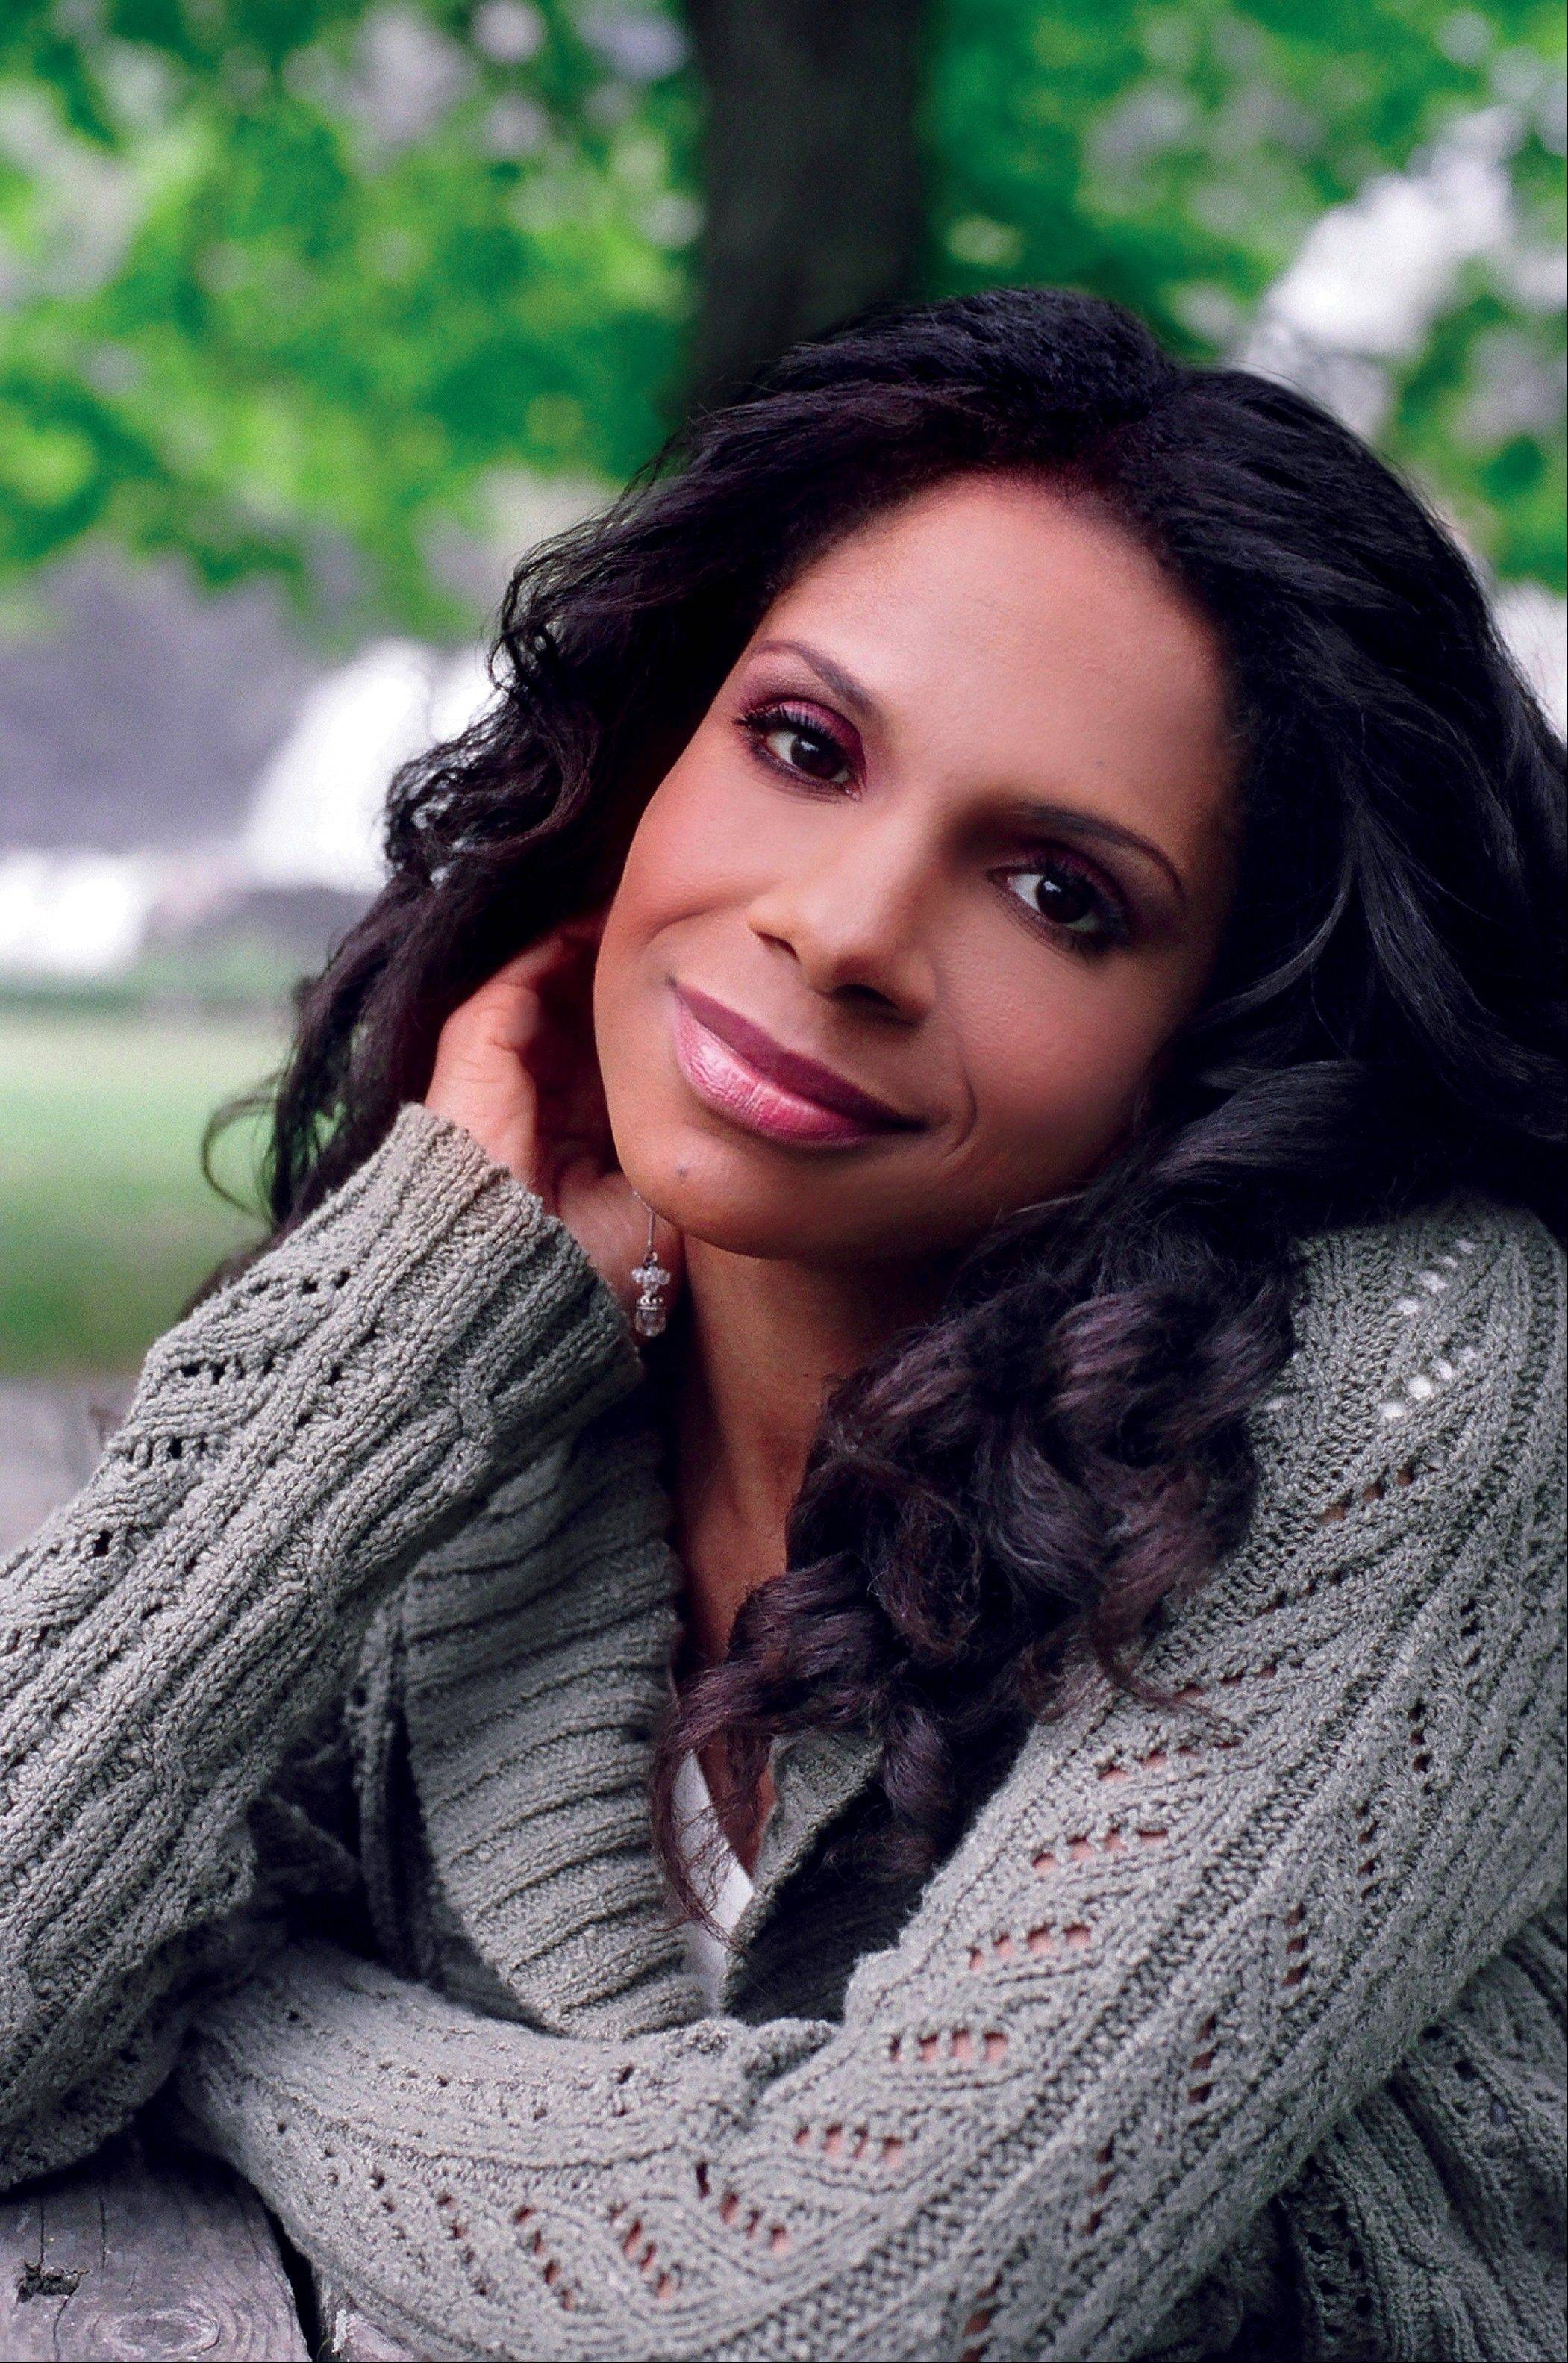 Five-time Tony Award-winner Audra McDonald is set to perform at Dominican University's Lund Auditorium in River Forest.